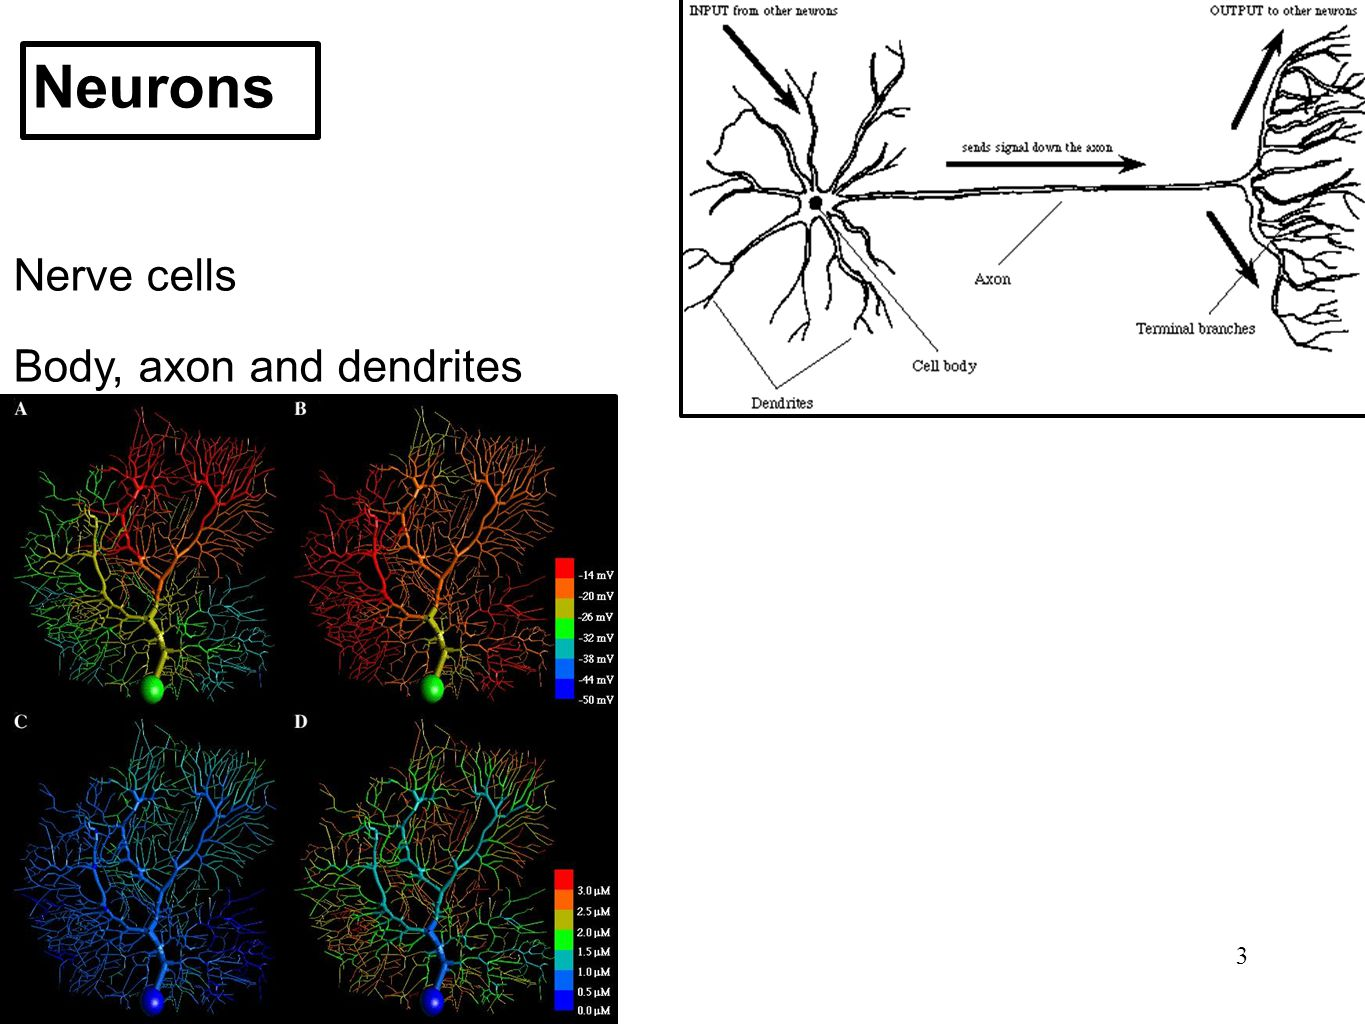 Neurons Nerve cells Body, axon and dendrites 3